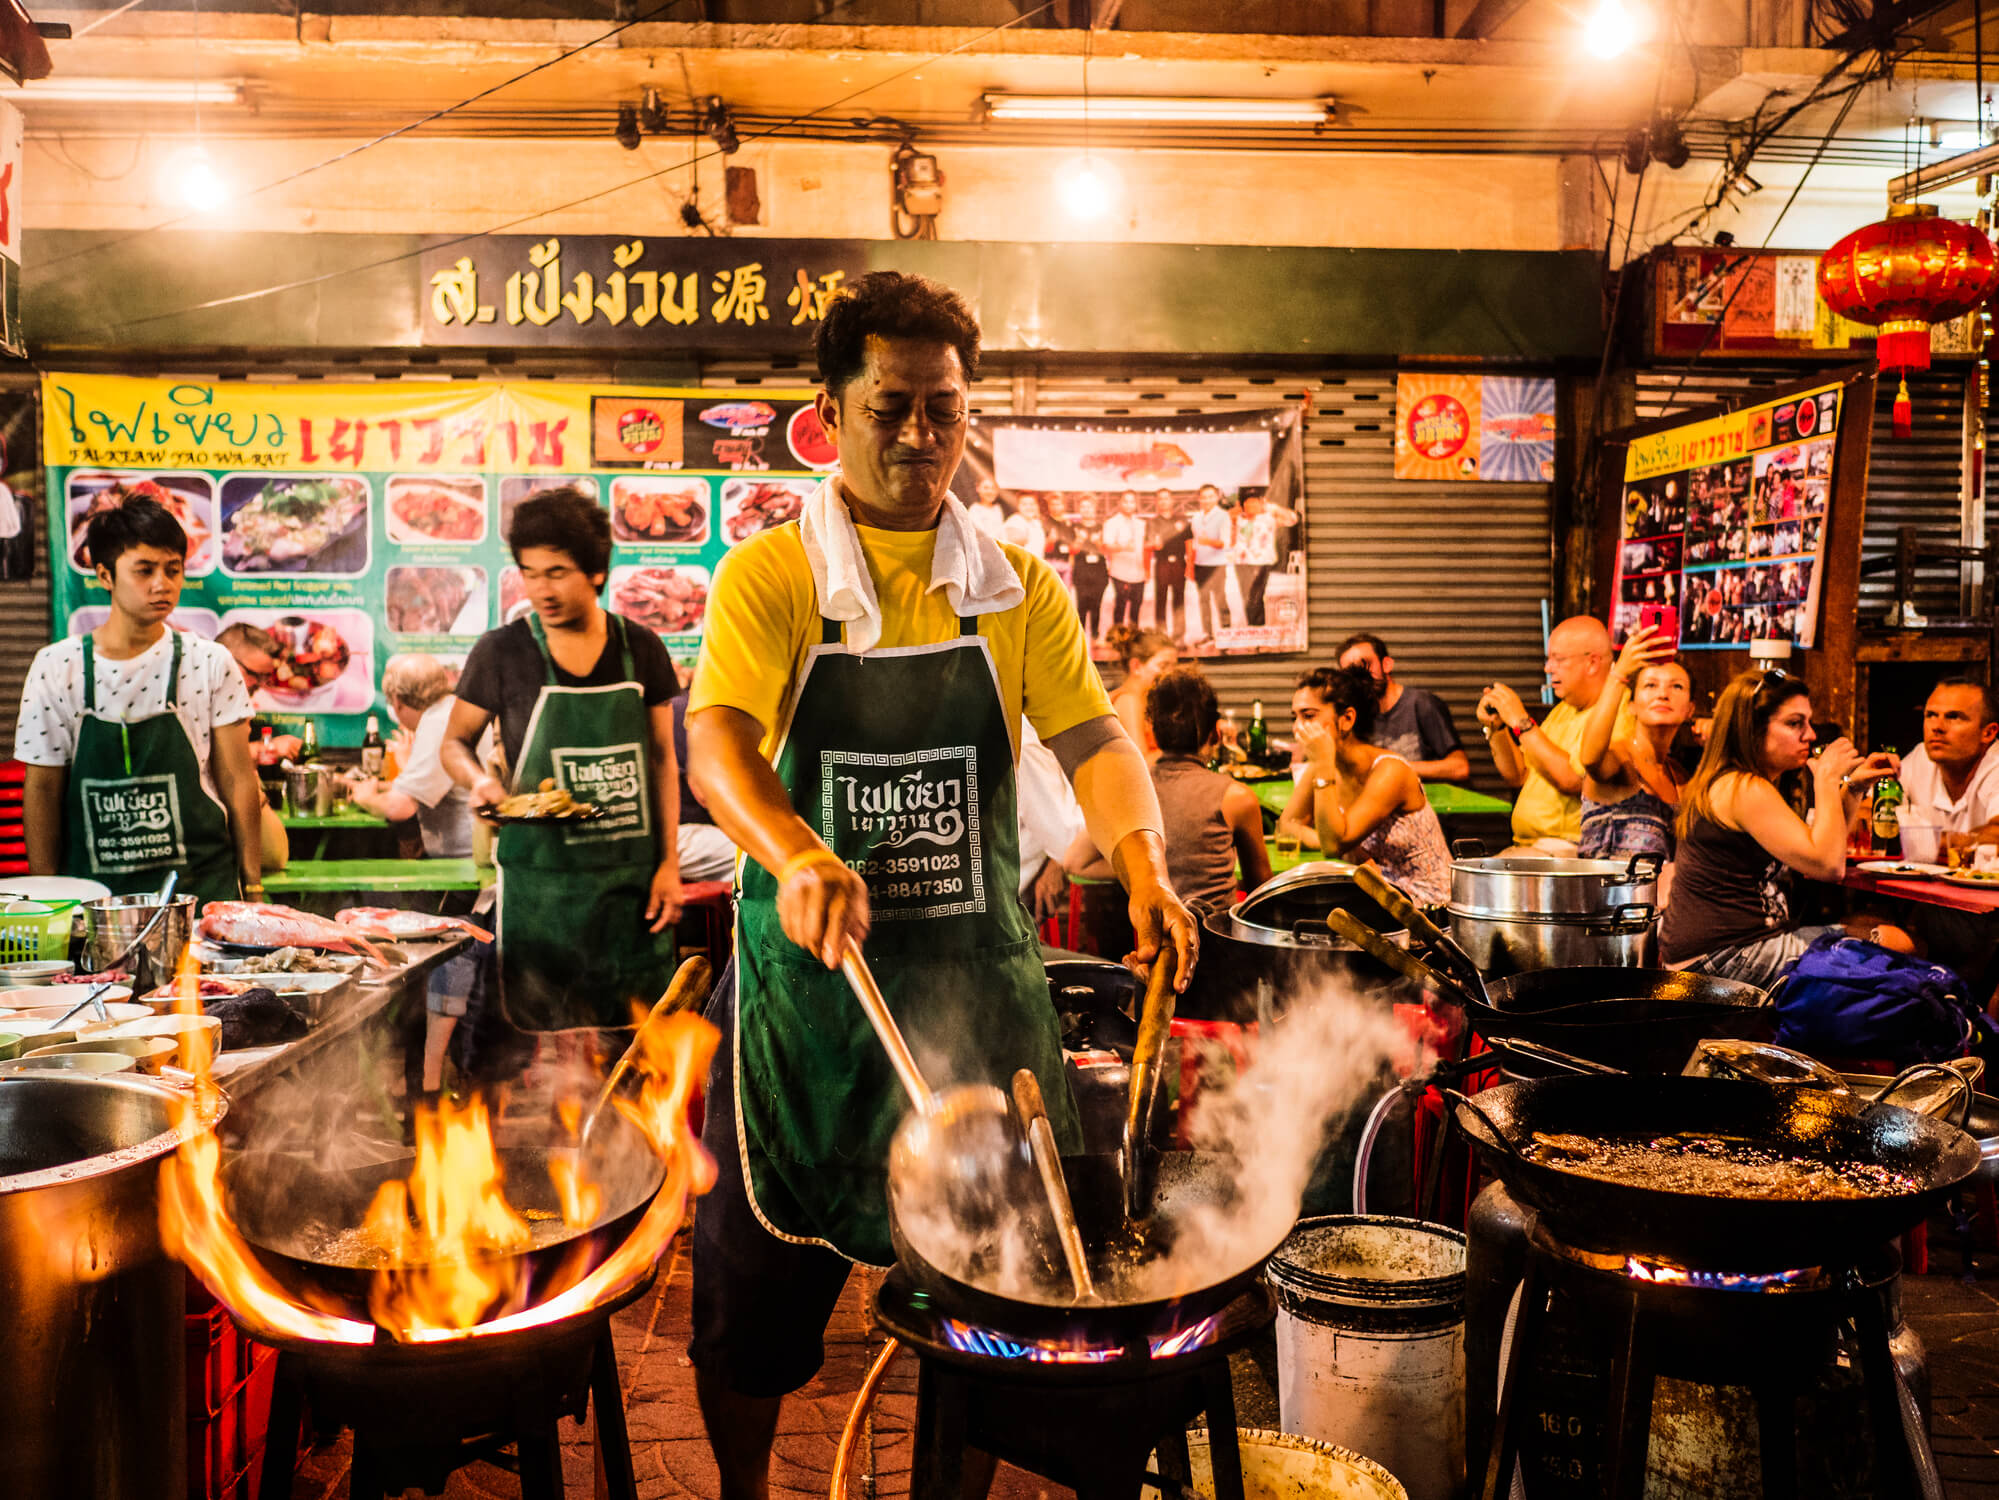 A man sauteing food over a hot wok in Chinatown - best street food in Bangkok